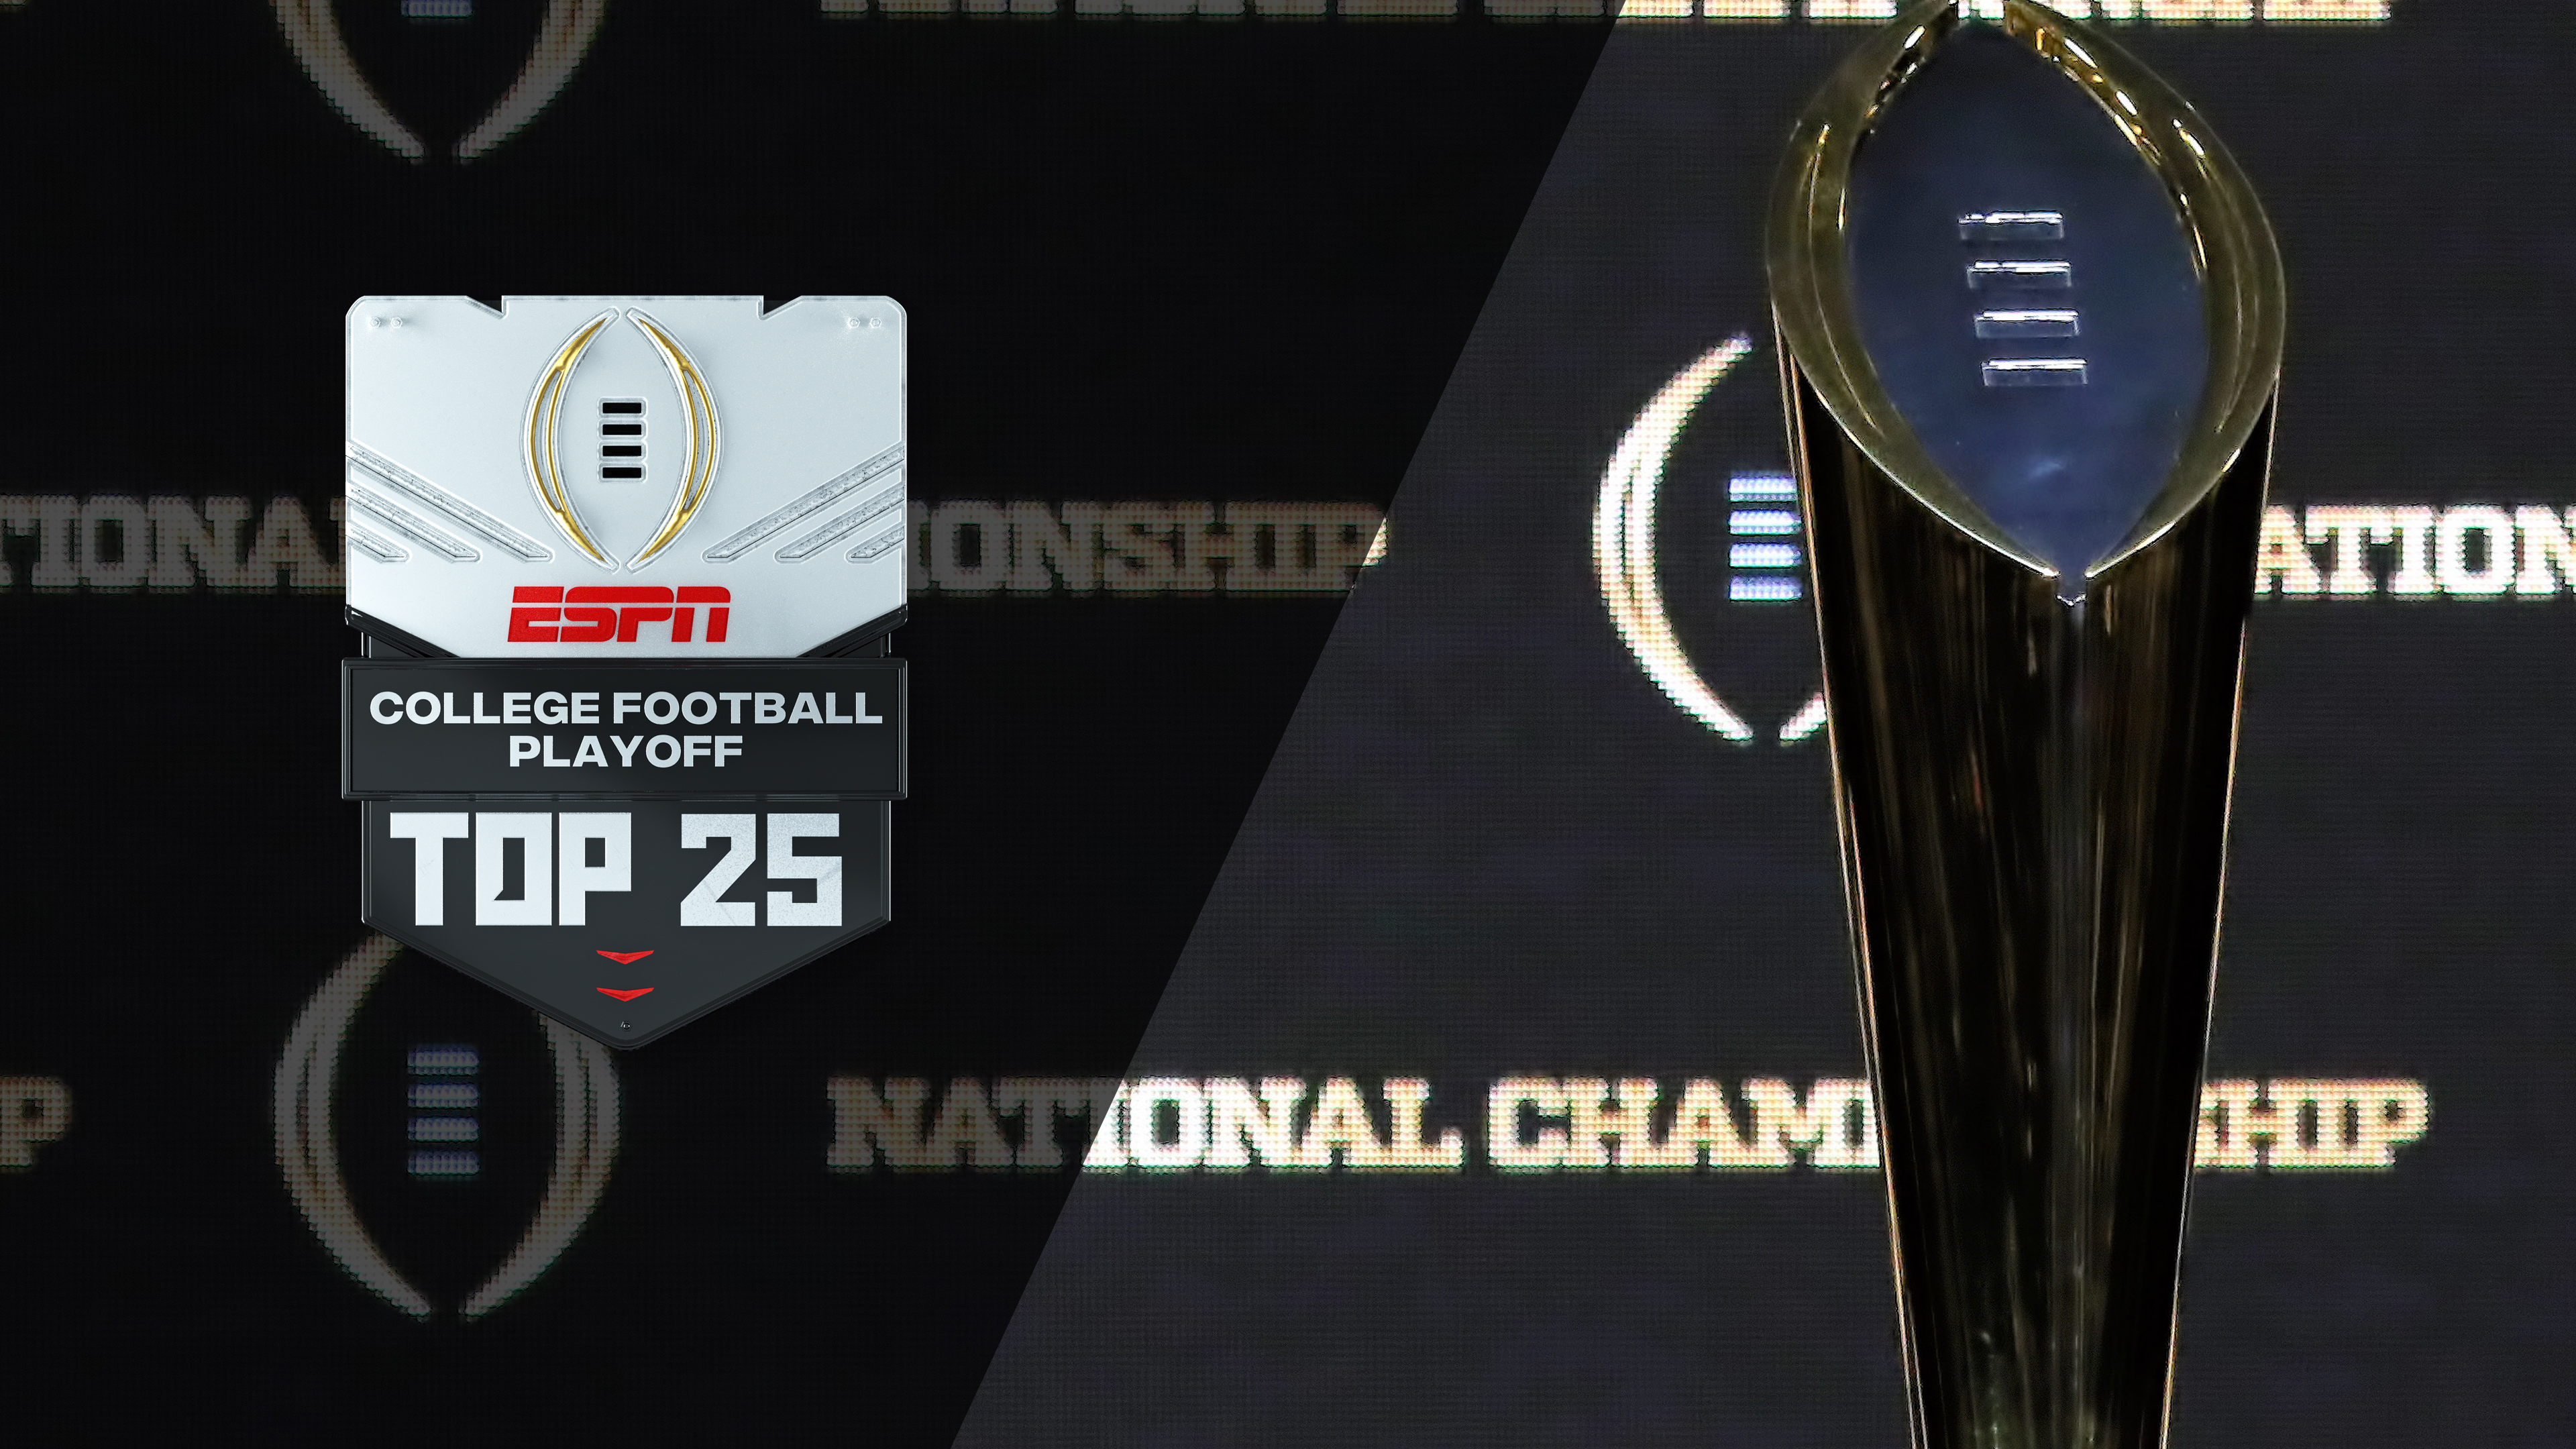 College Football Playoff: Top 25 Presented by Goodyear